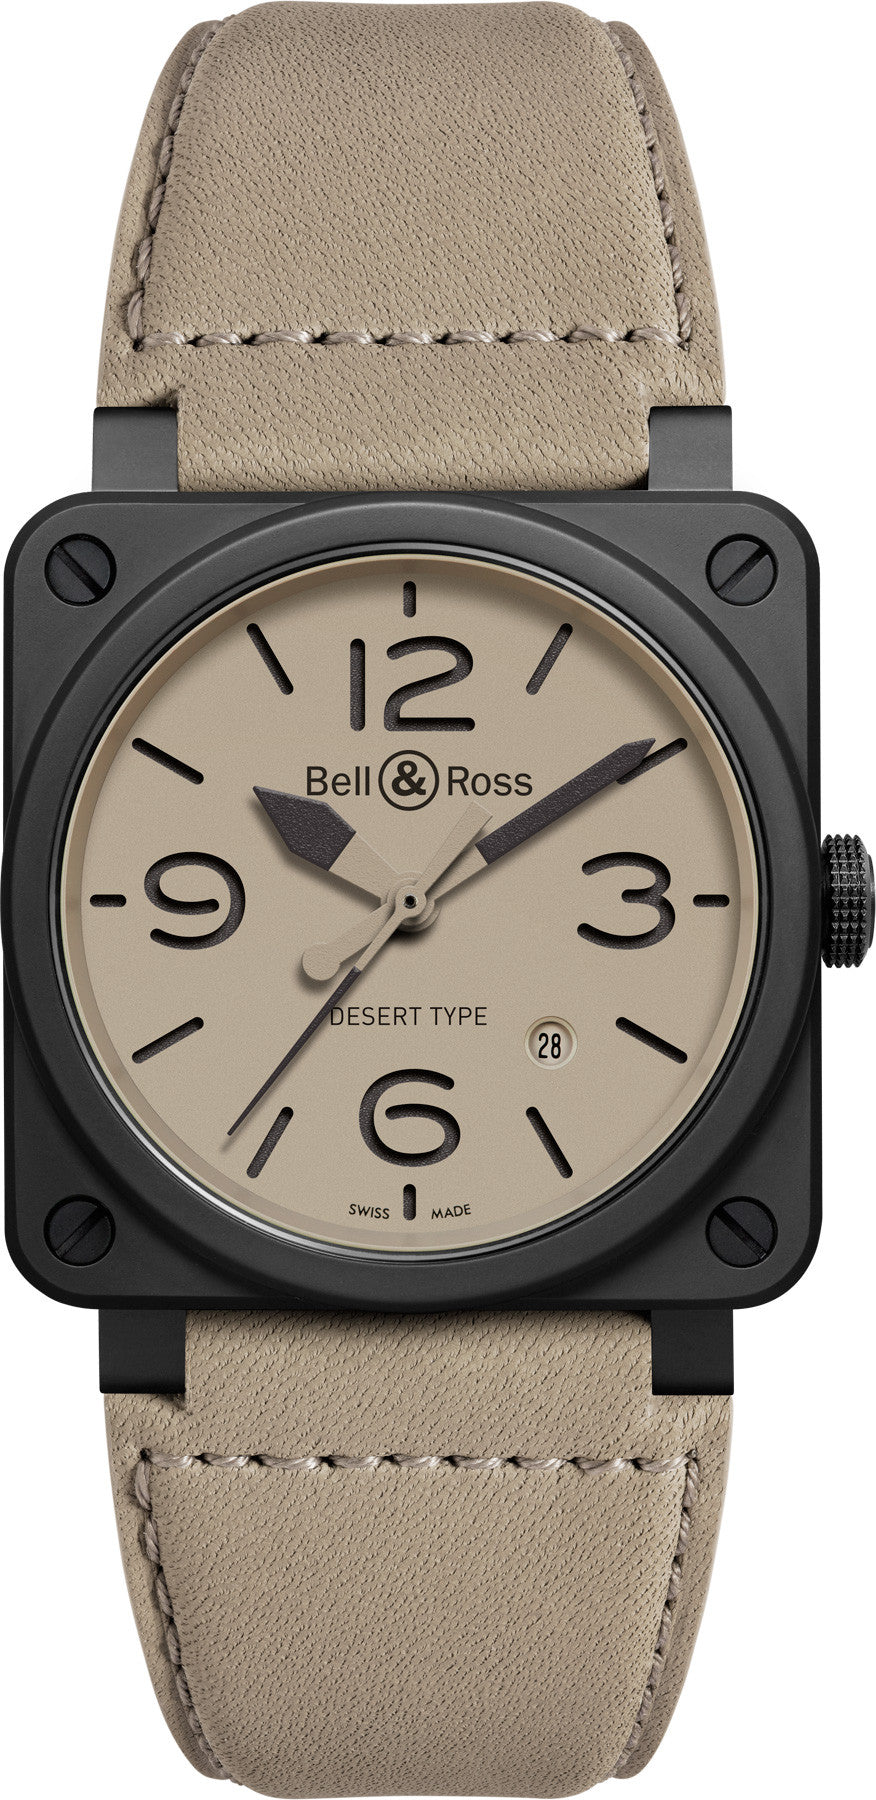 Bell & Ross Watch BR 03 92 Desert Type